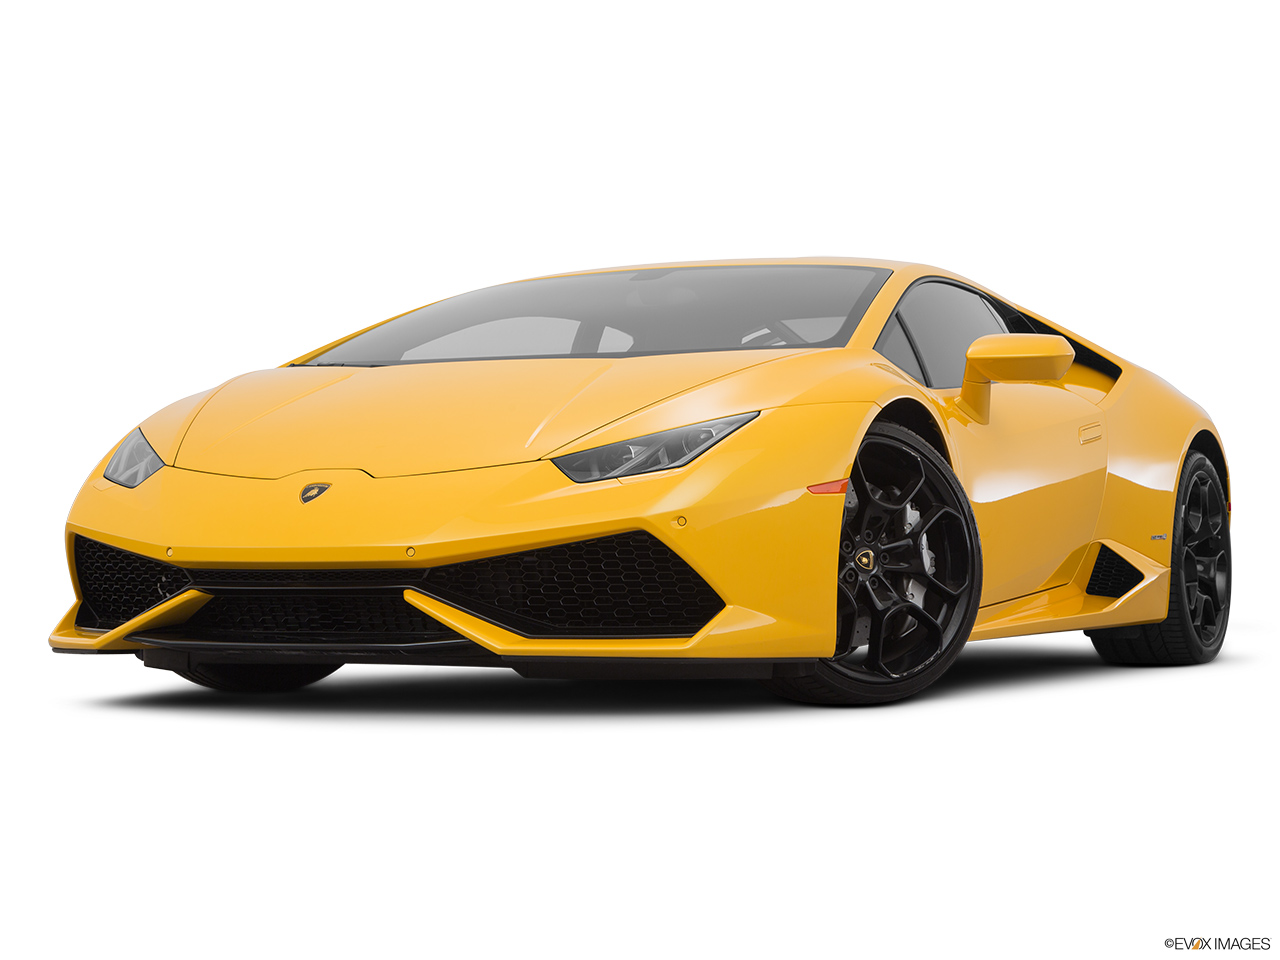 2015 Lamborghini Huracan LP 610-4 Front angle view, low wide perspective.